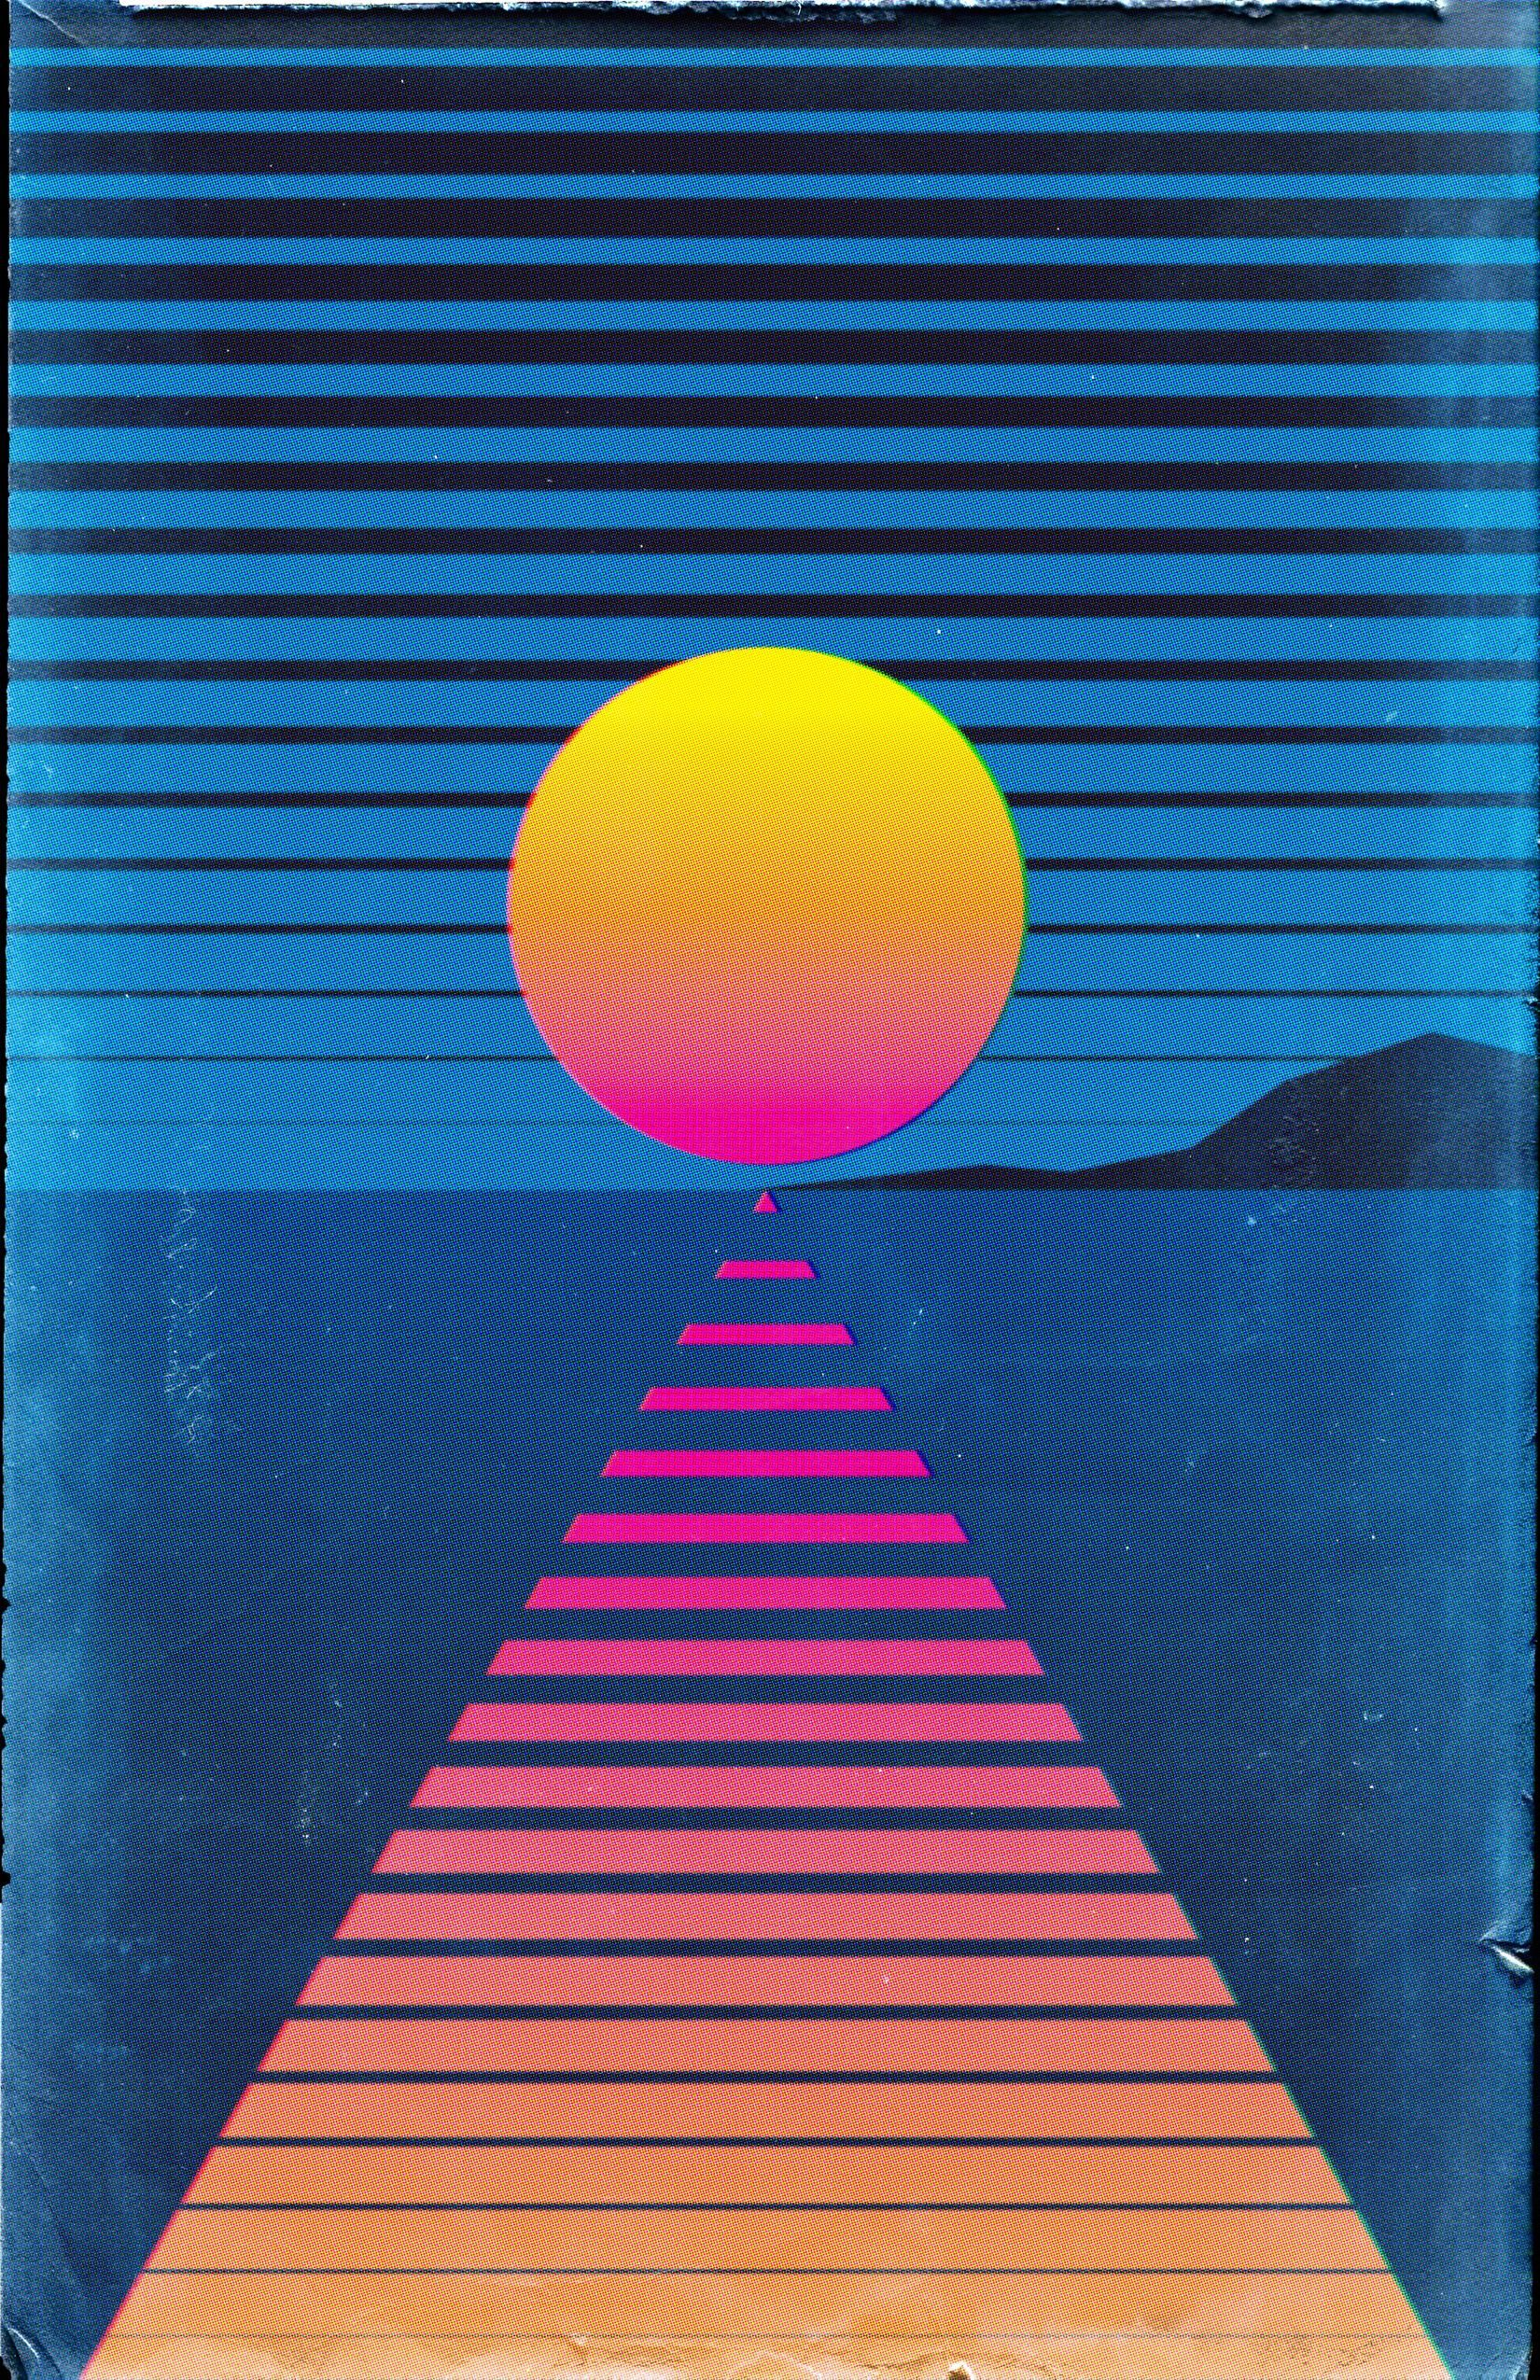 Quick Retrowave Poster Outrun Wallpaper Iphone Neon Iphone Wallpaper Vintage Wallpaper Iphone Christmas